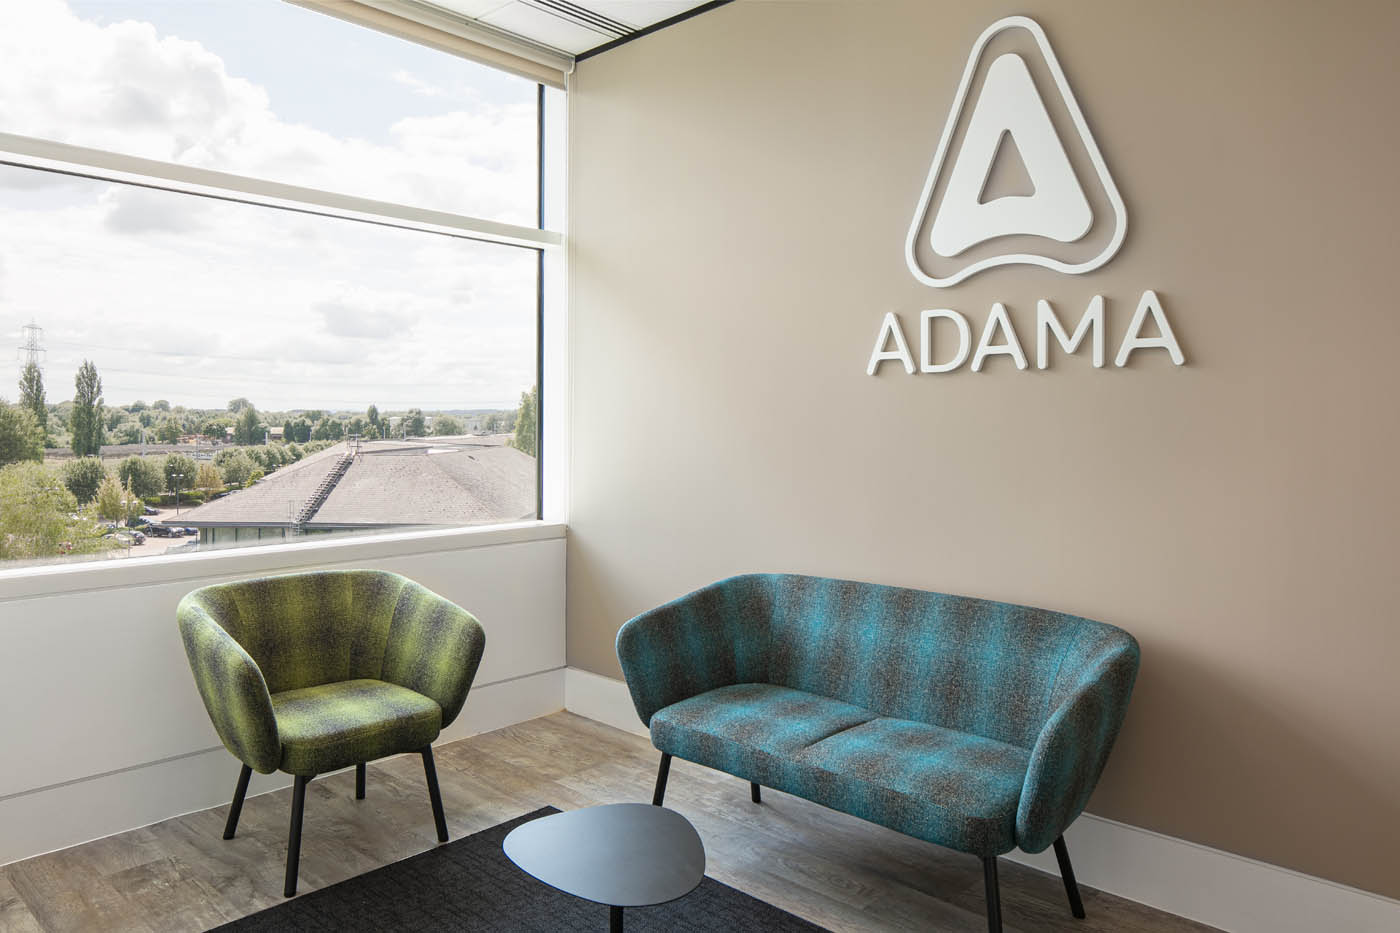 Office Design and Fit Out - Adama (2)